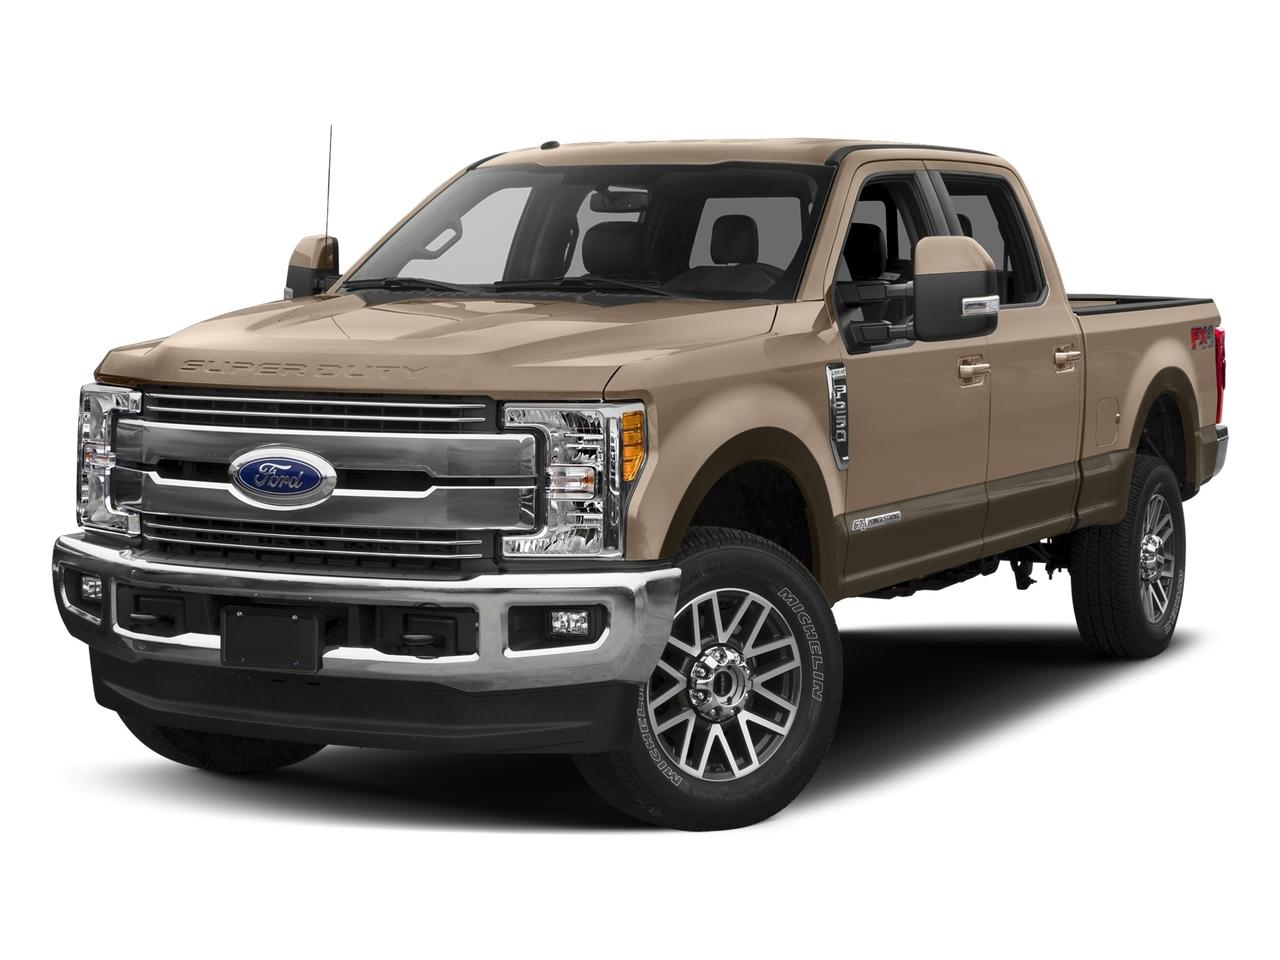 2017 Ford Super Duty F-350 SRW Vehicle Photo in San Angelo, TX 76901